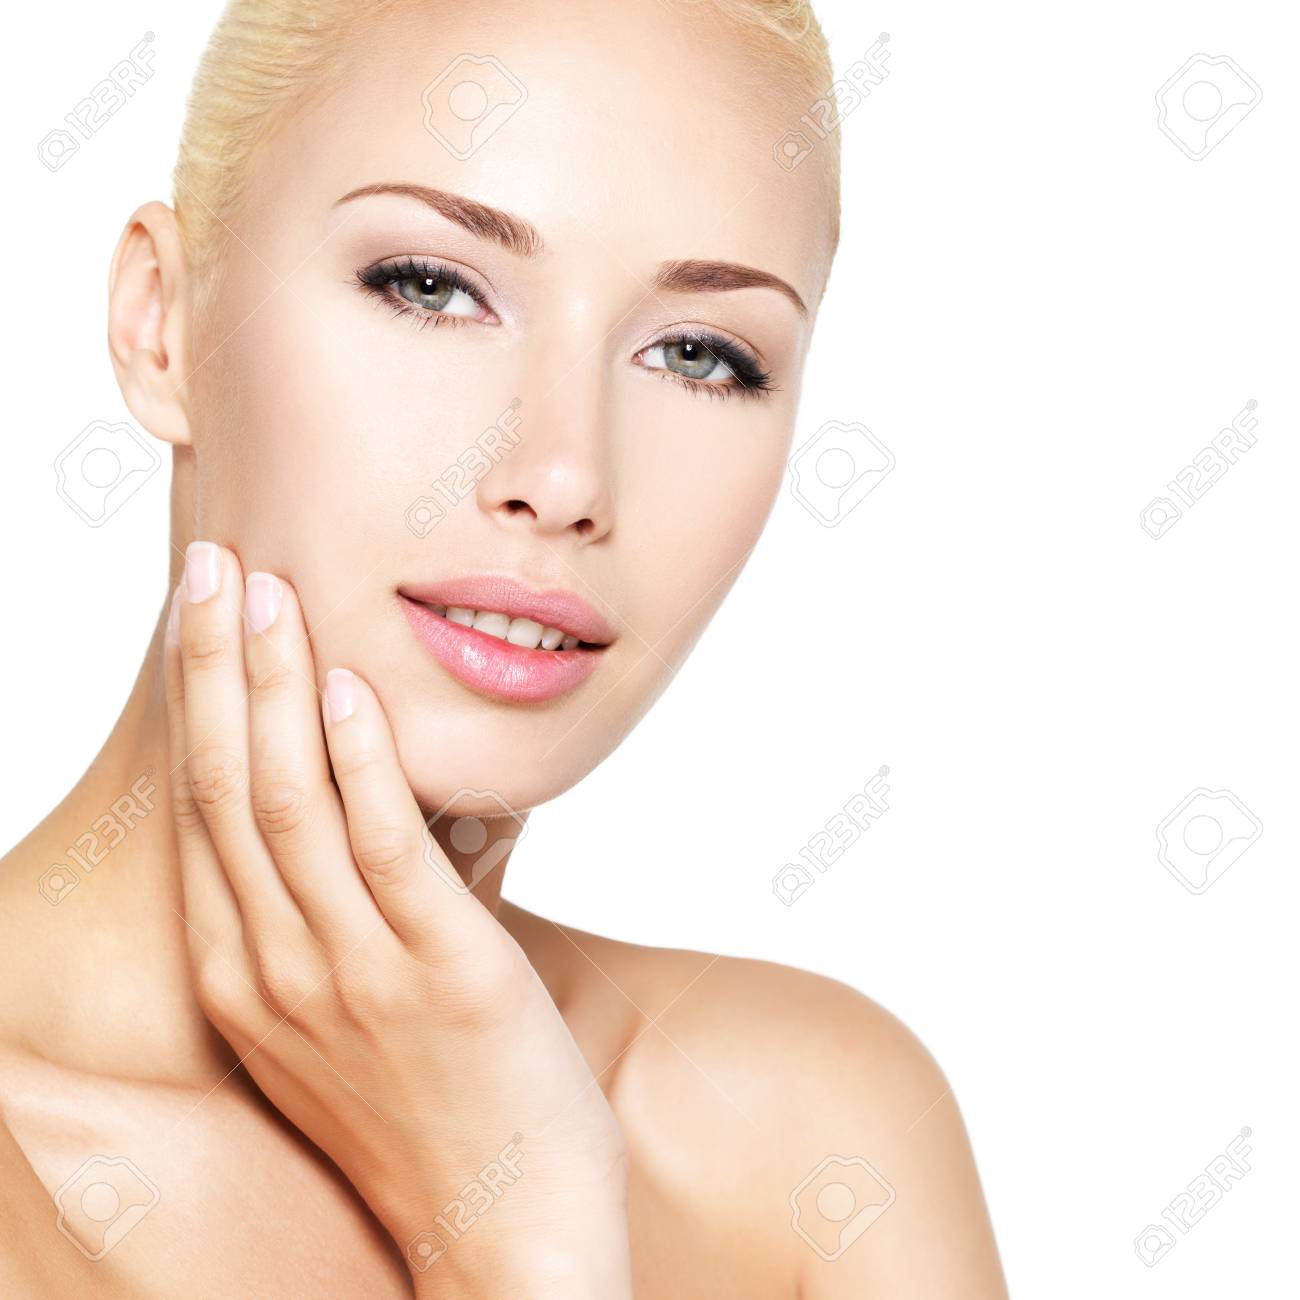 Beauty face of the young pretty blond woman with hands - isolated on white Stock Photo - 24246435